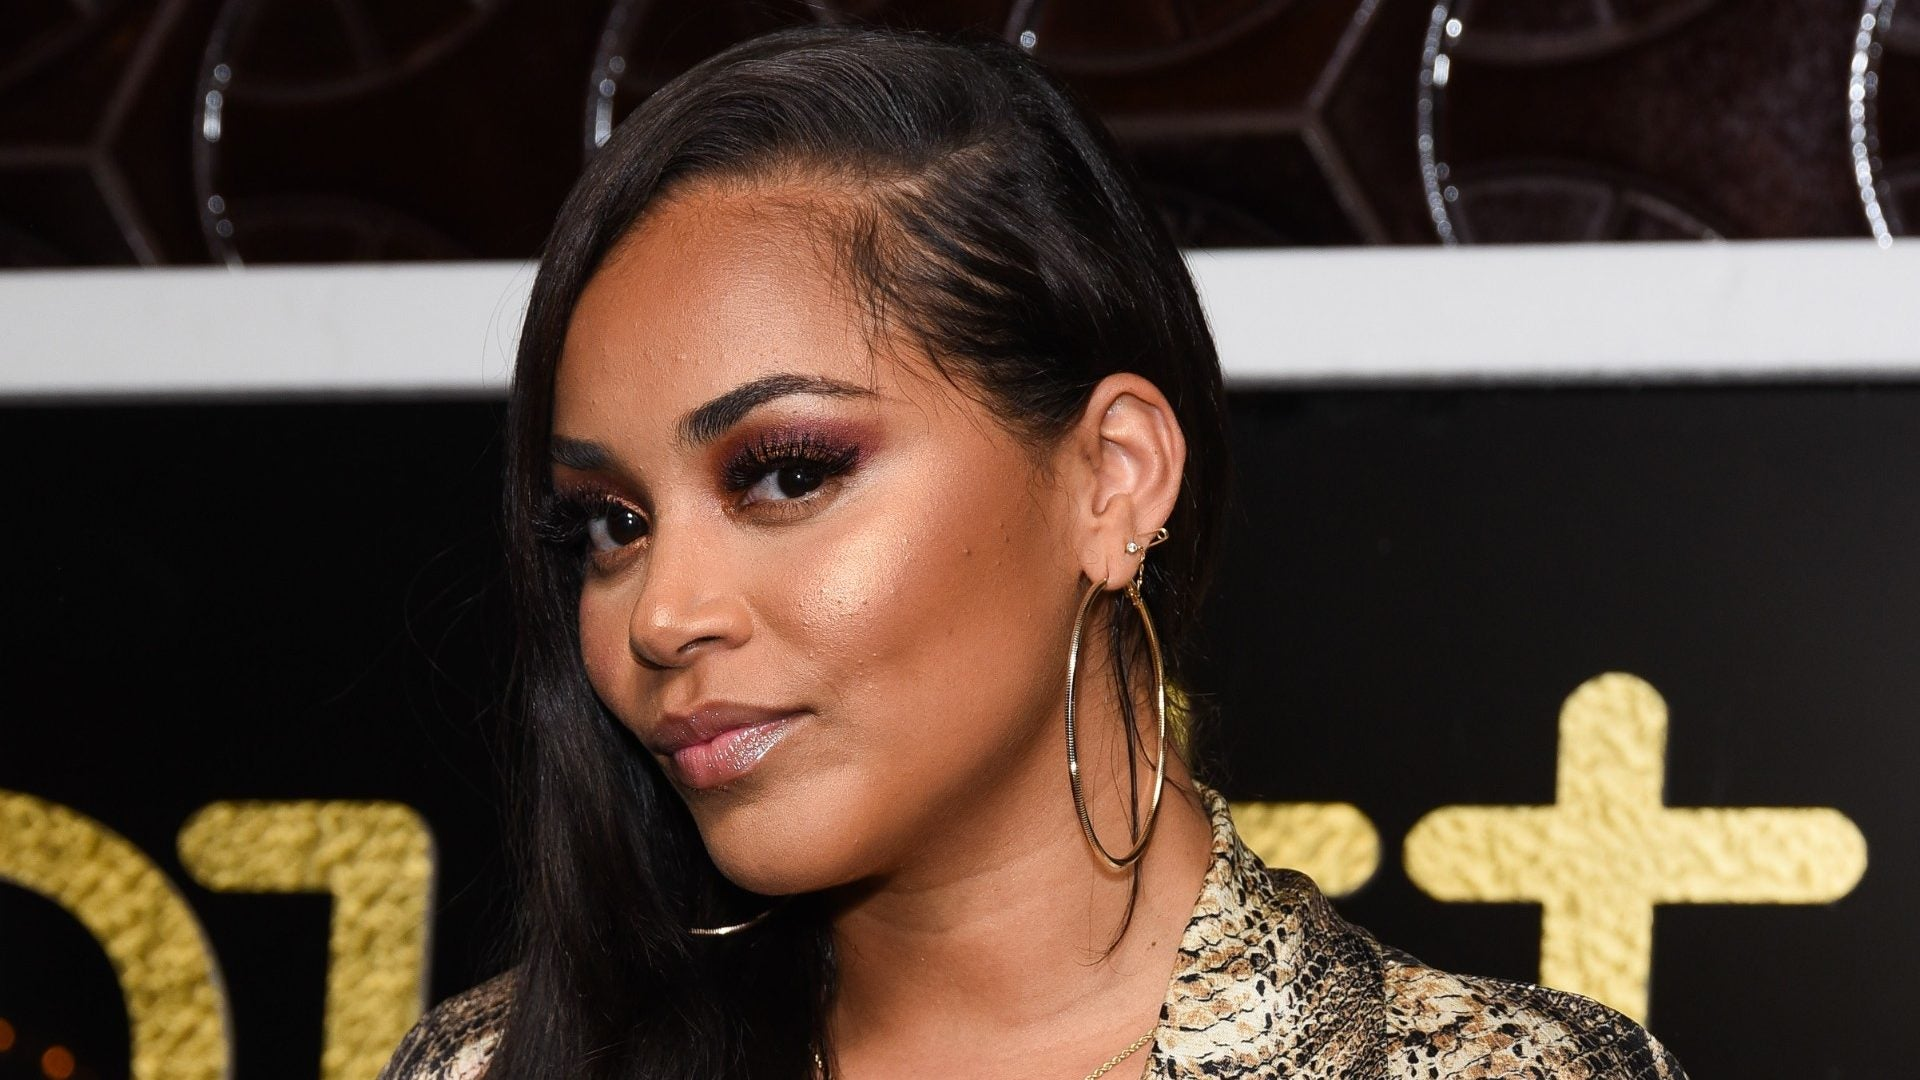 15 Times Lauren London And Those Dimples Made Us Melt